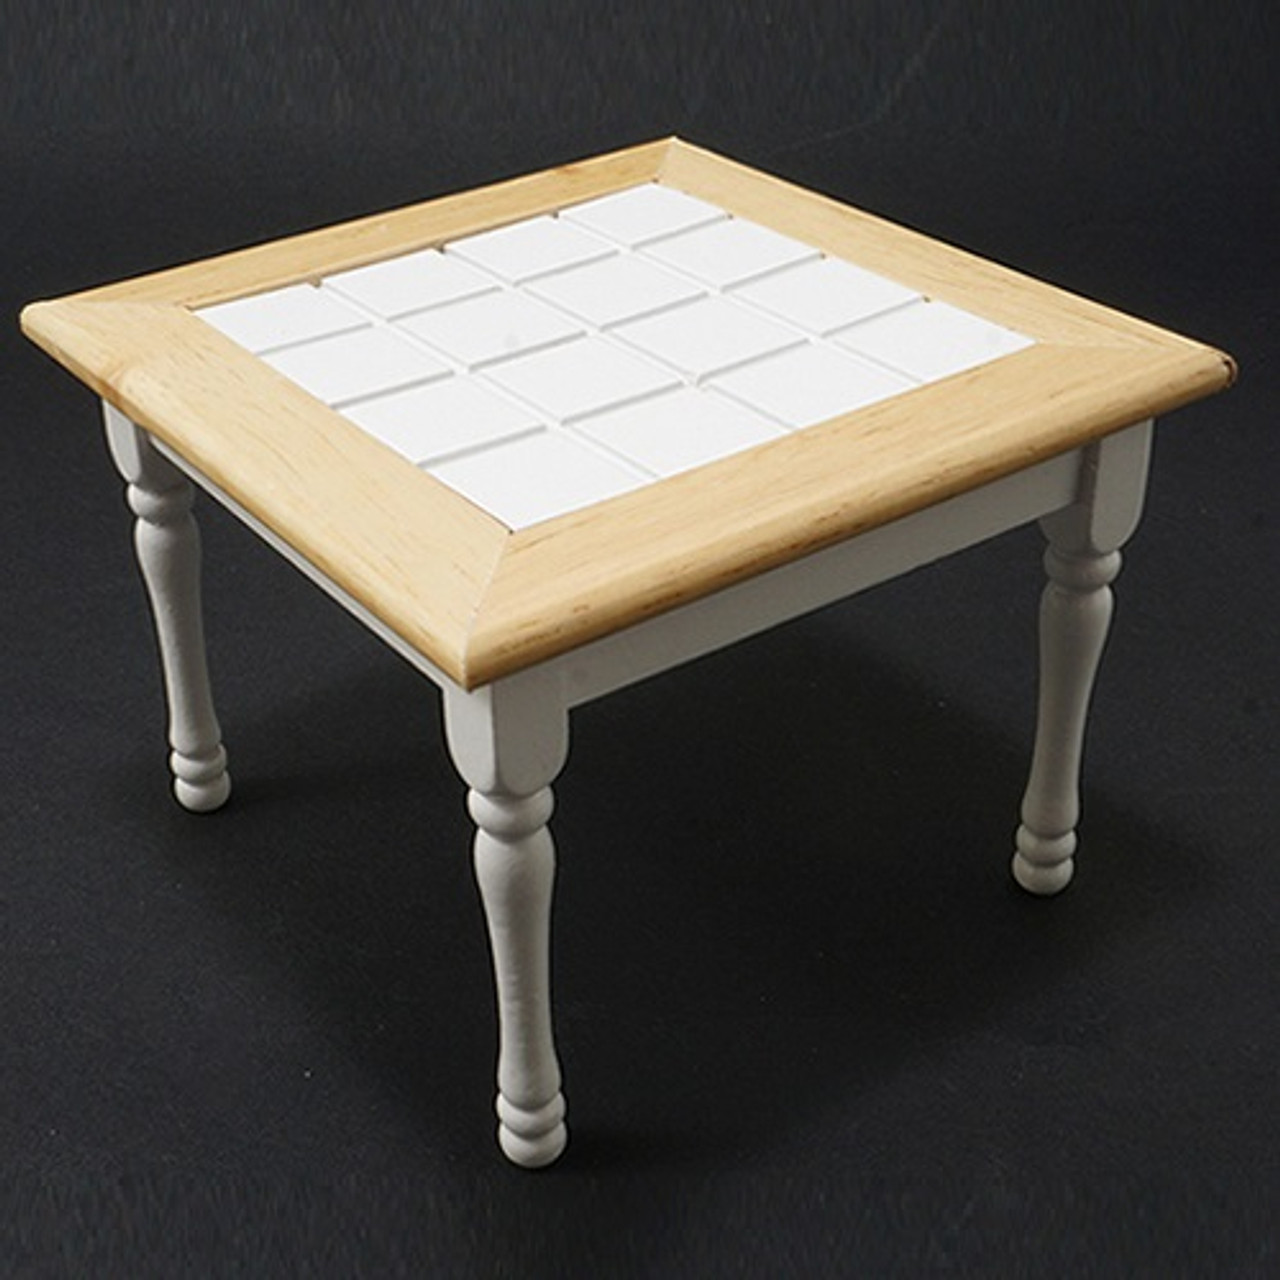 Table, Oak and White (CLA10218); top view